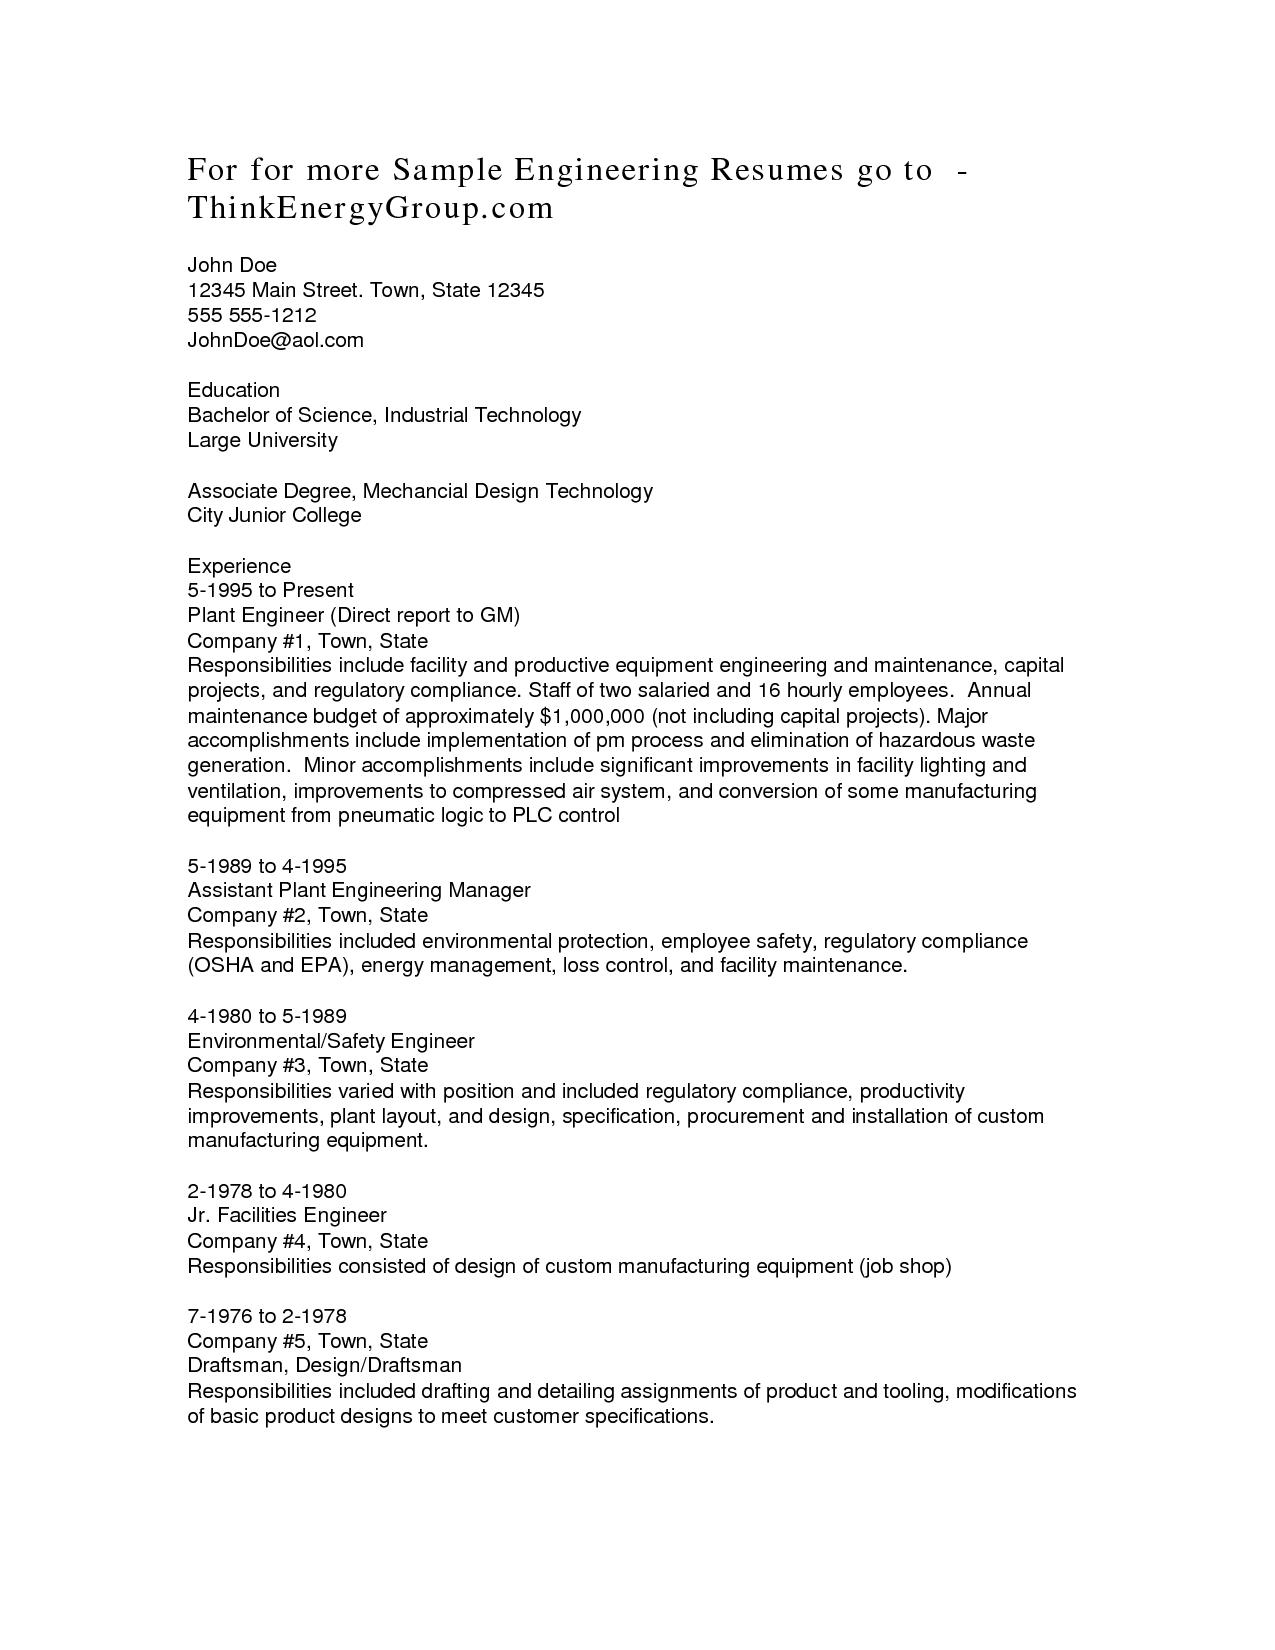 90 Nice Associate Degree Resume Sample for Images